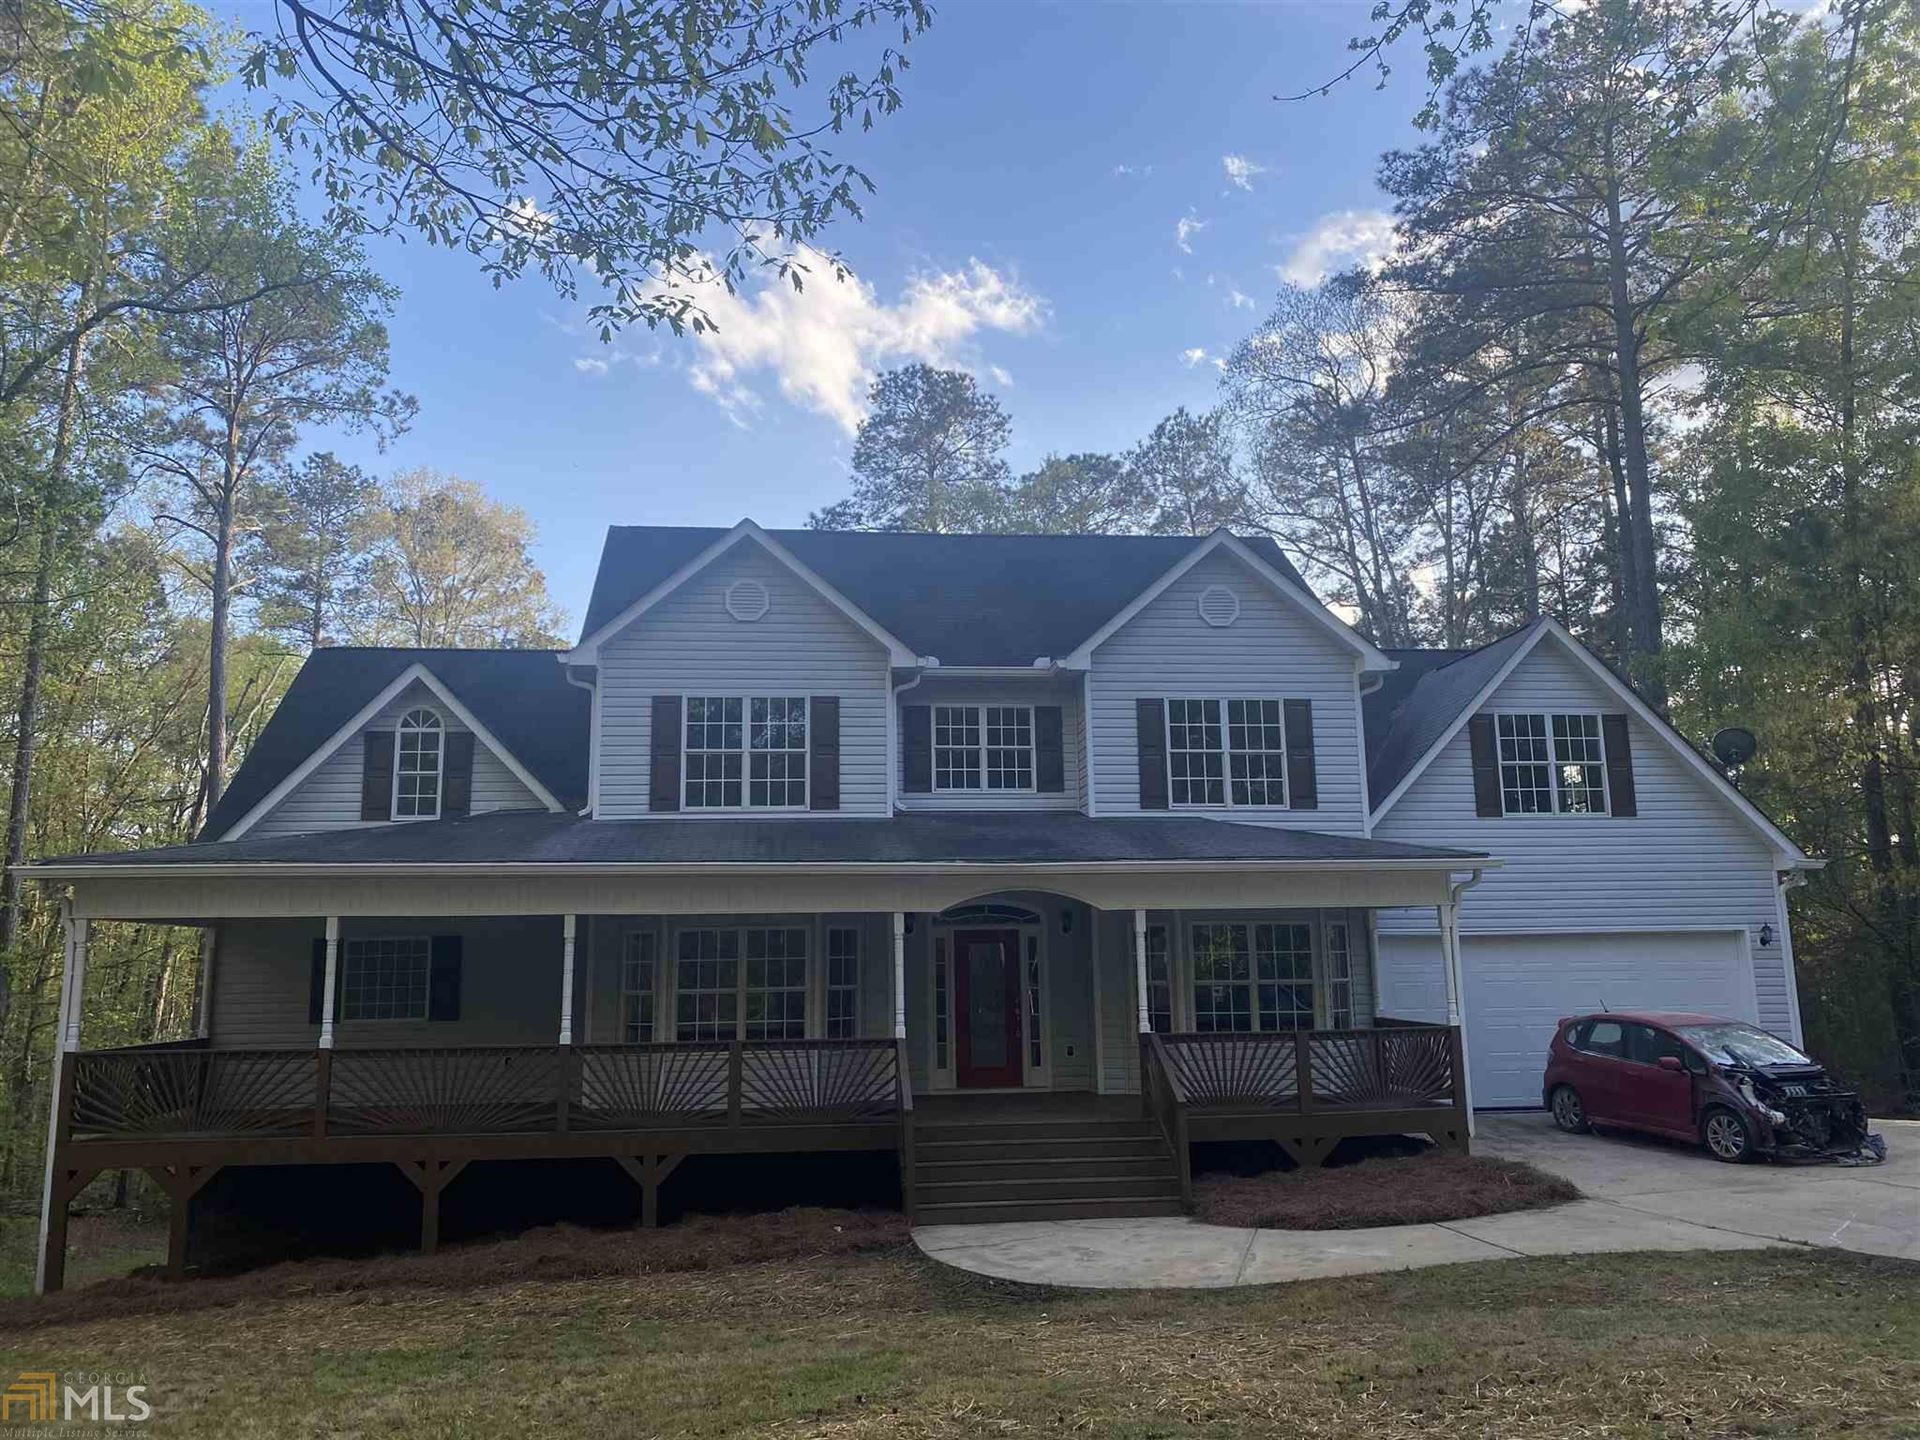 365 Partridge Dr, Monticello, GA 31064 - MLS#: 8958622